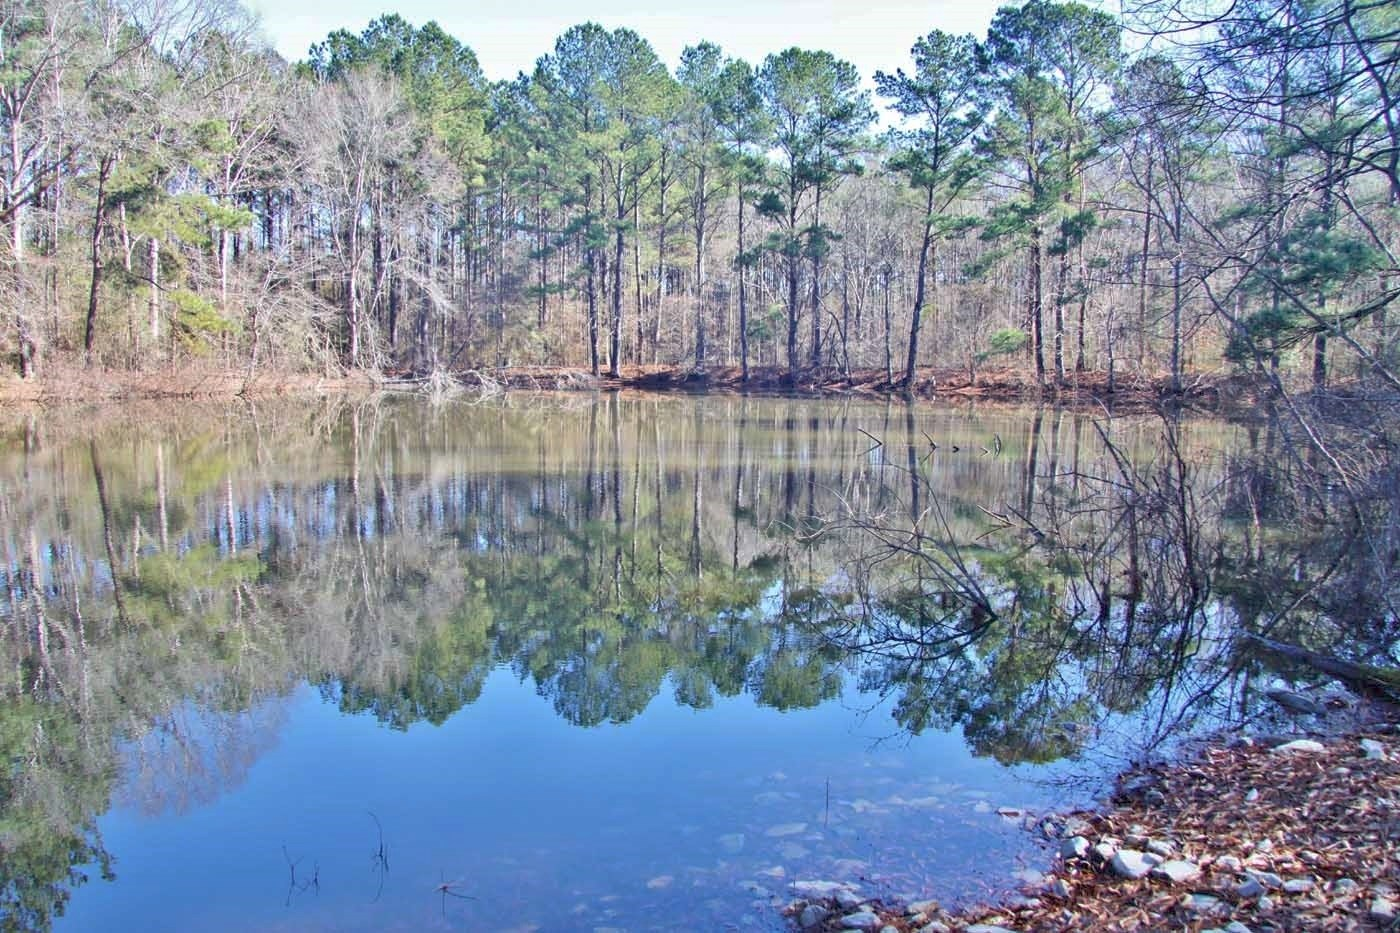 51.85 Acres for Sale Smithdale, Amite County, Southwest MS